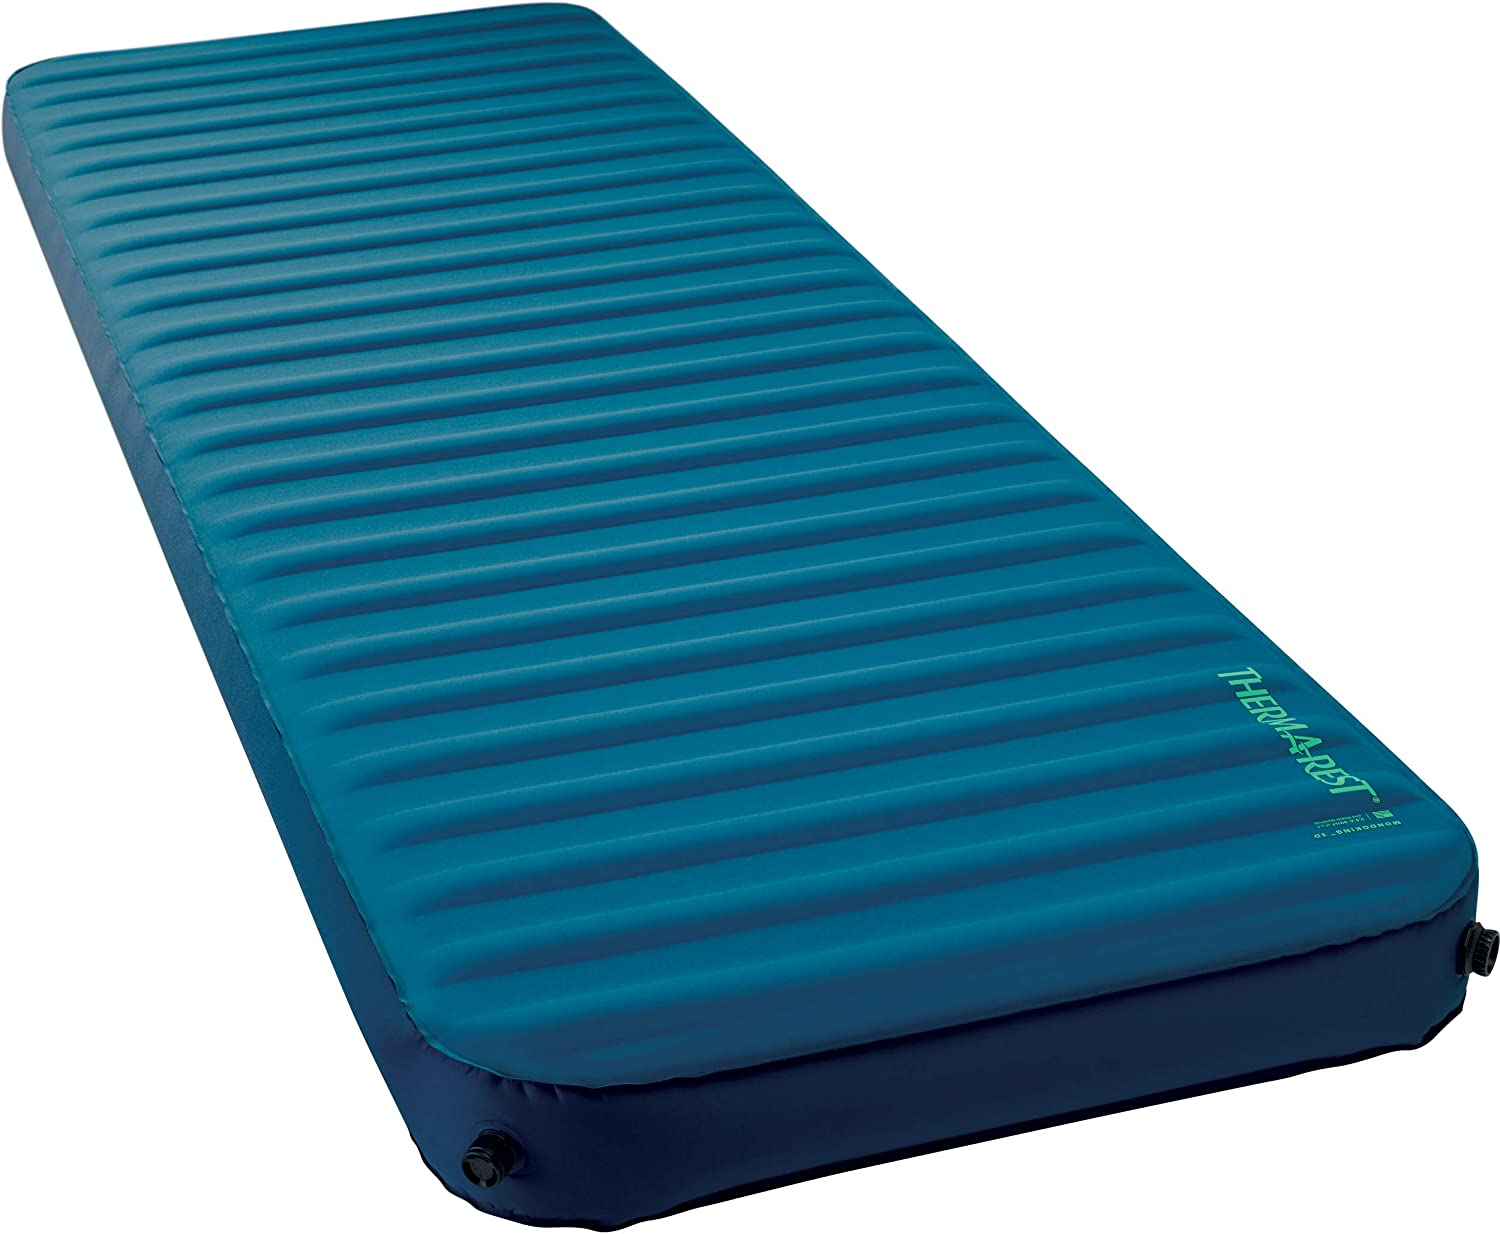 Therm-a-Rest MondoKing 3D Self-Inflating Foam Camping Air Mattress